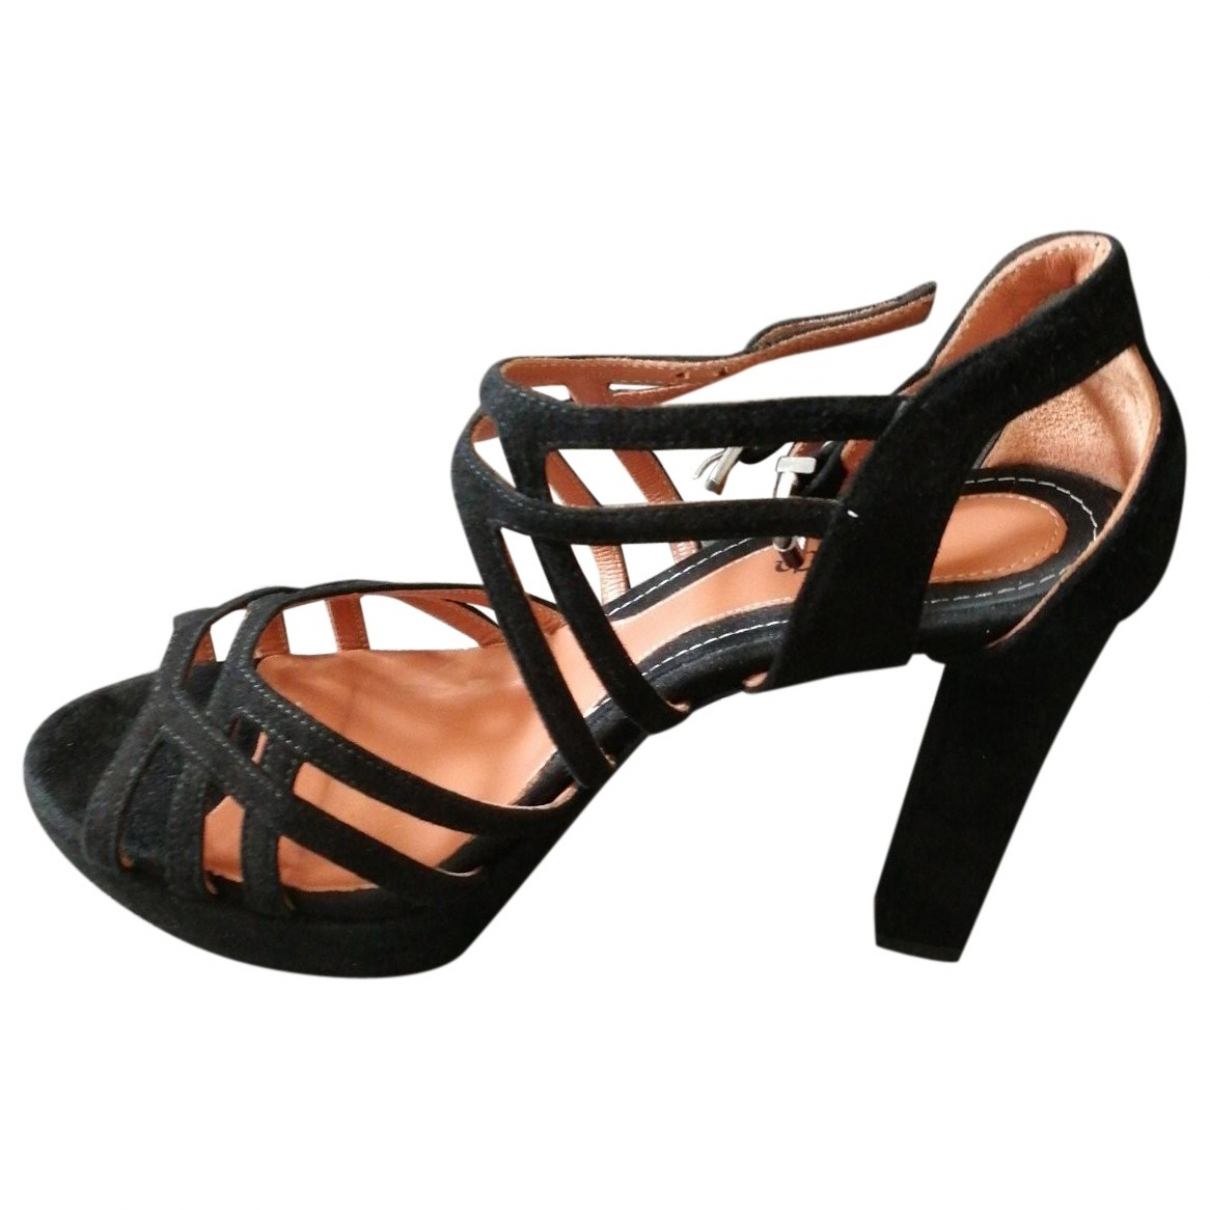 Max & Co \N Black Leather Sandals for Women 38 EU